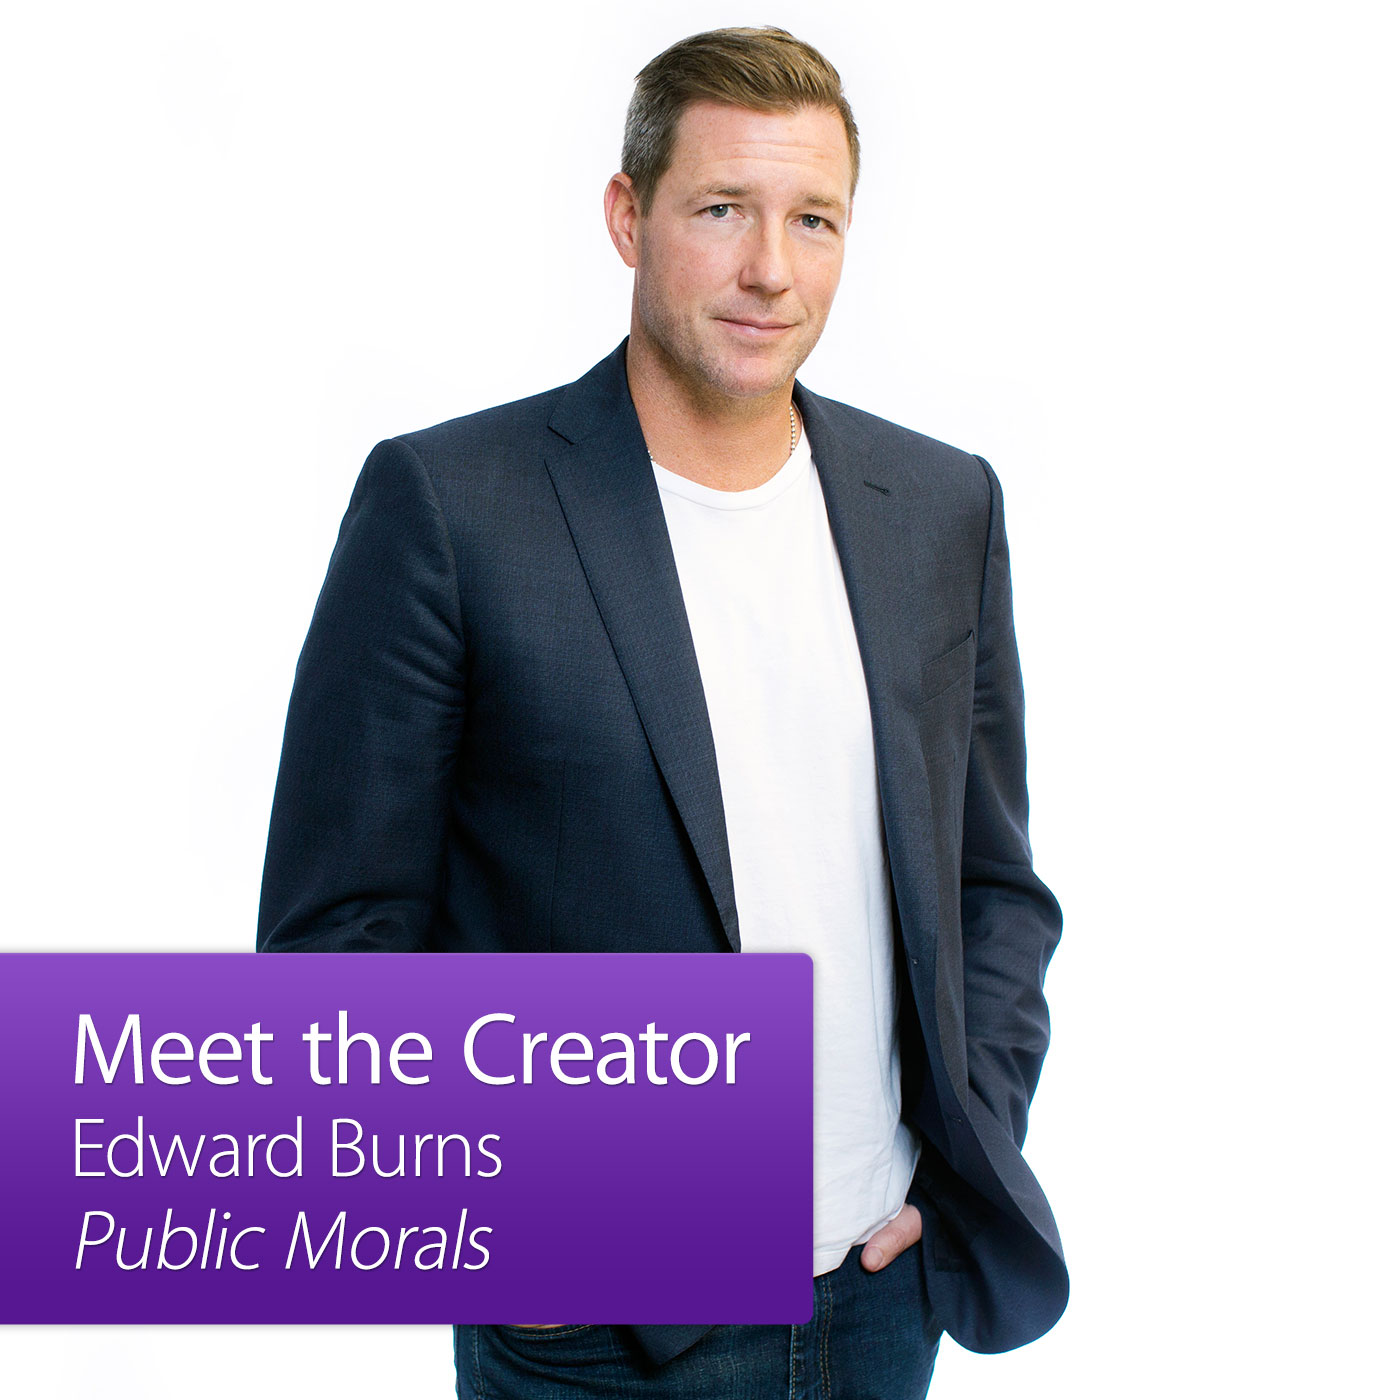 Public Morals: Meet the Creator